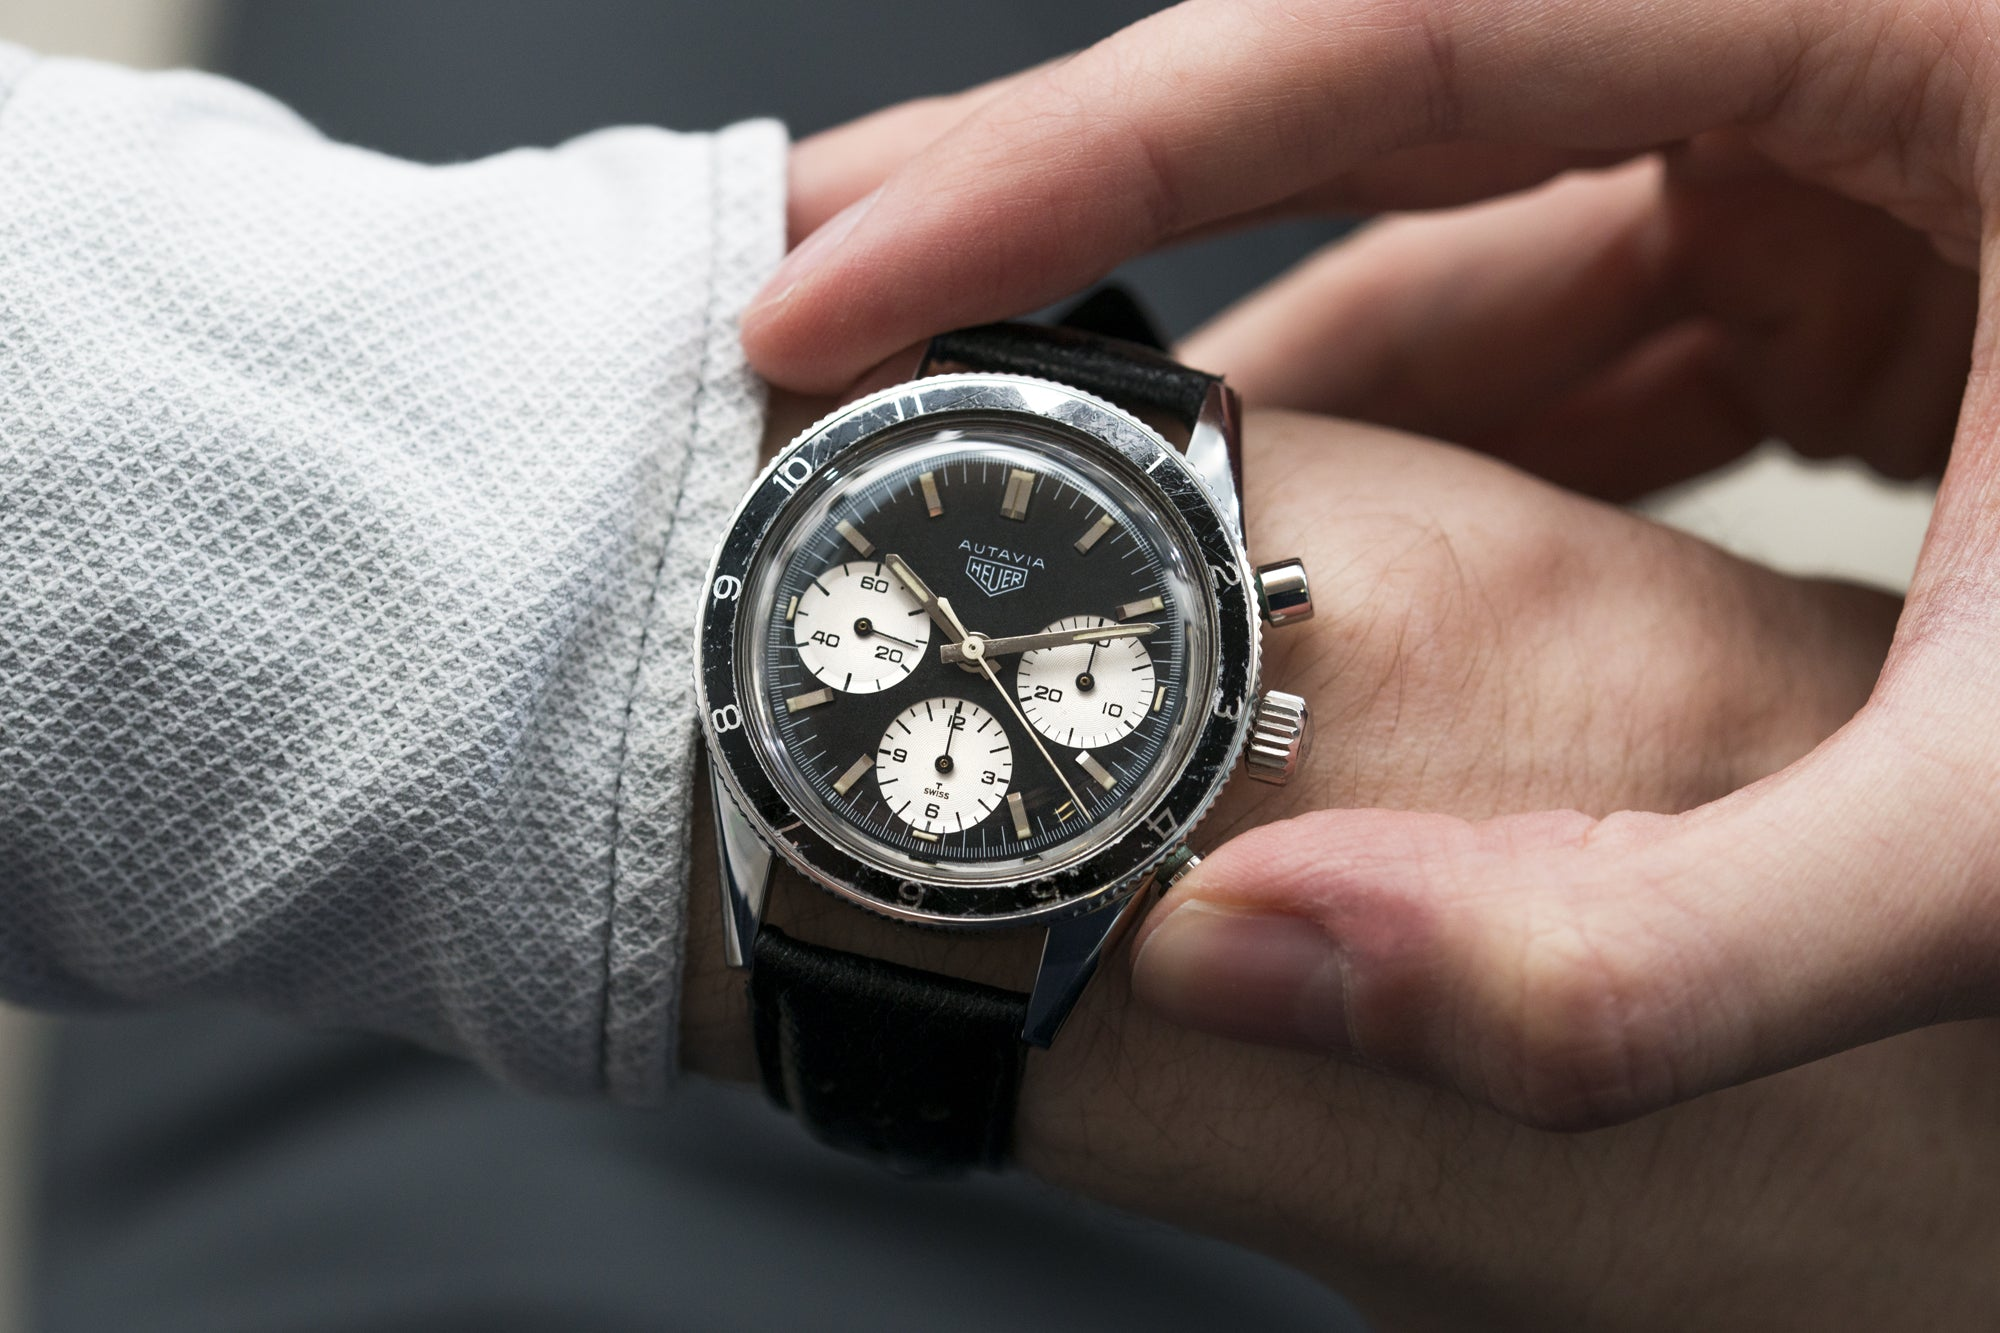 Richard Milner's vintage Heuer Autavia 'Jochen Rindt' ref. 2446 at A Collected Man London